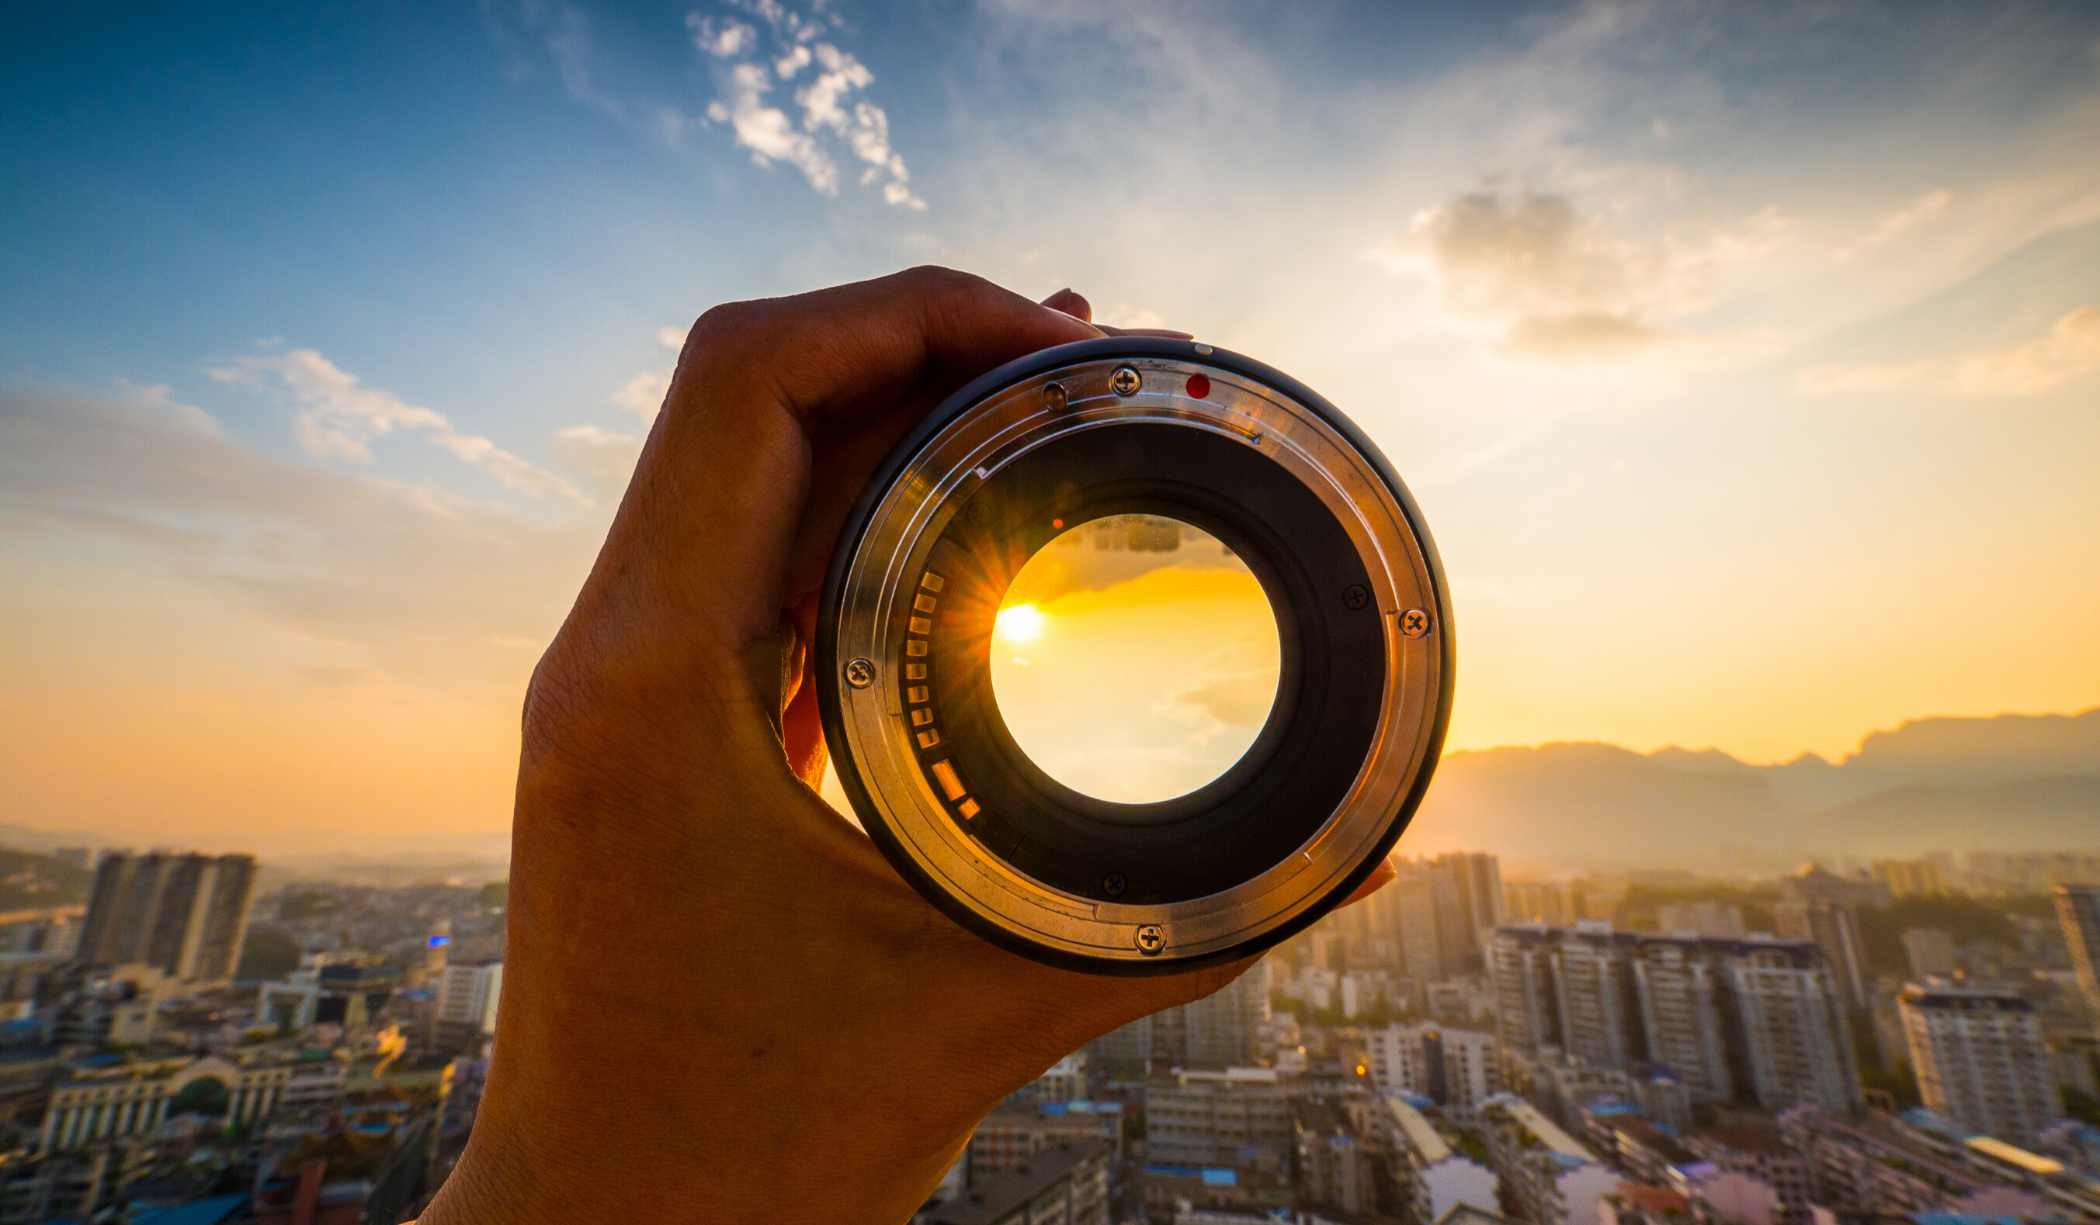 Inbound Marketing through the Lens of the Flywheel